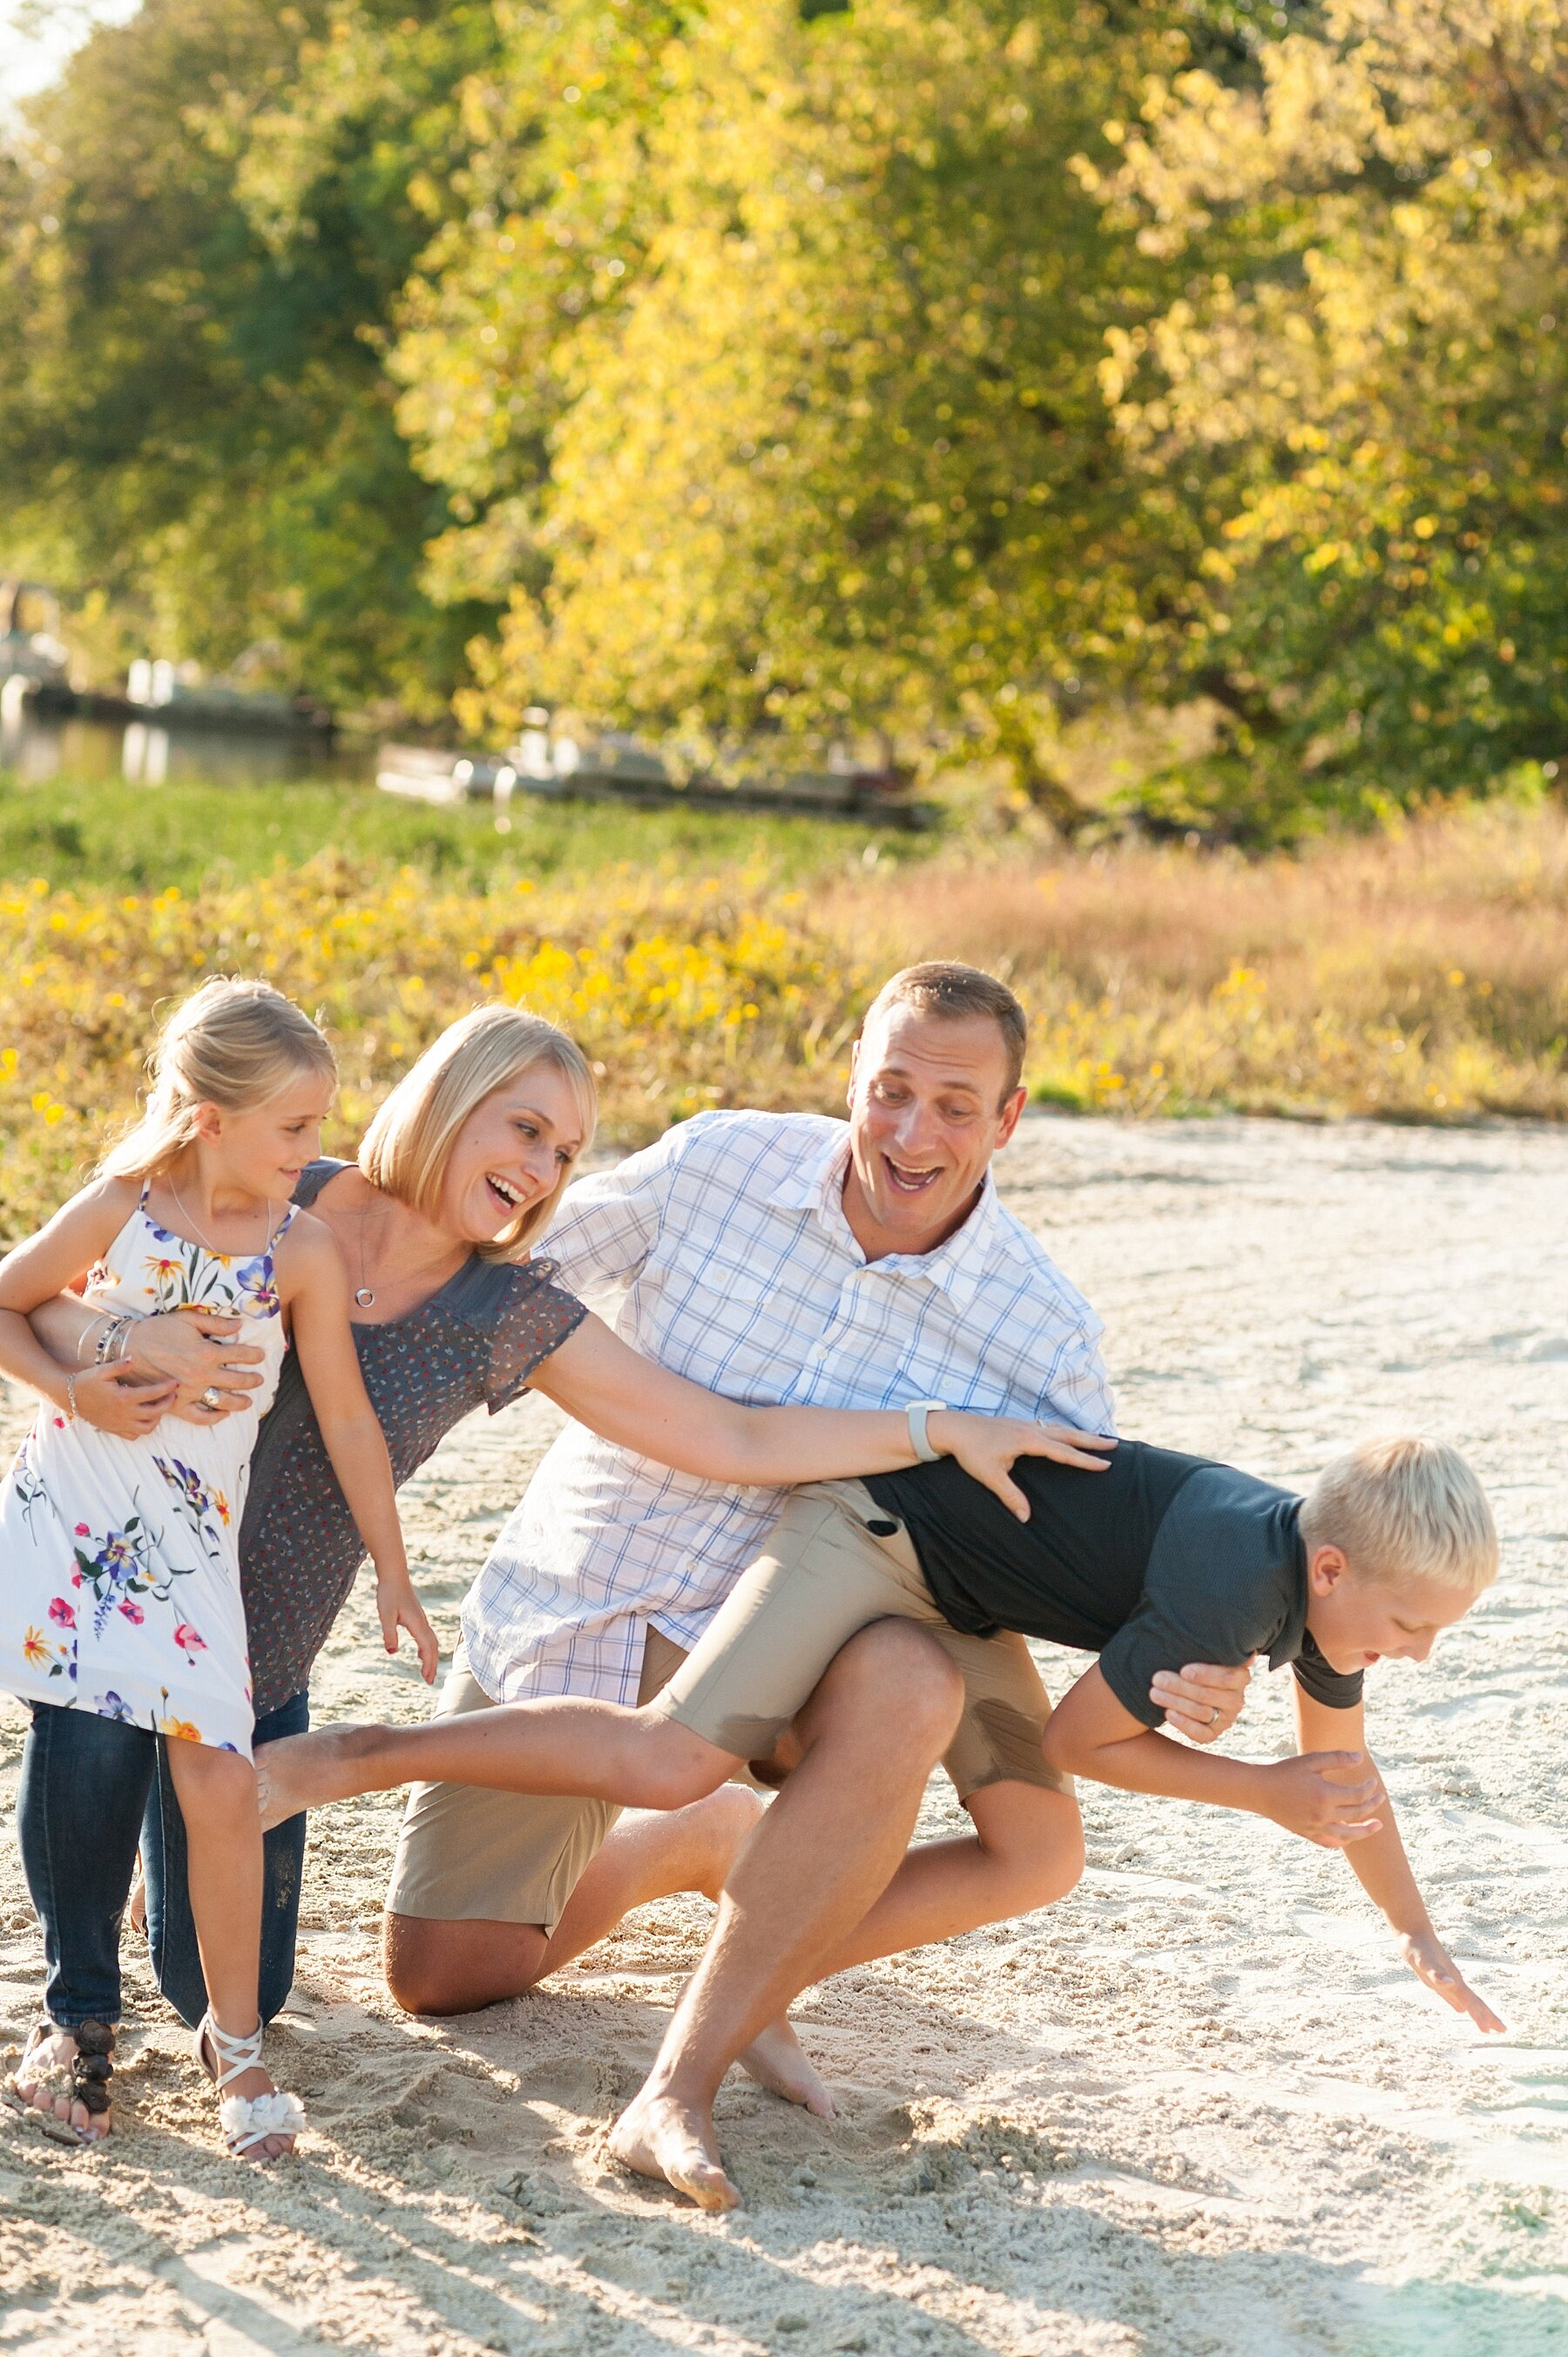 Wendy Zook Photography | Frederick MD family photos, Maryland family photos, Lake Linganore family photos, MD family photographer, family photographer, Maryland family session, family photos on the lake, beach family photos, Frederick family photos, Frederick family photographer